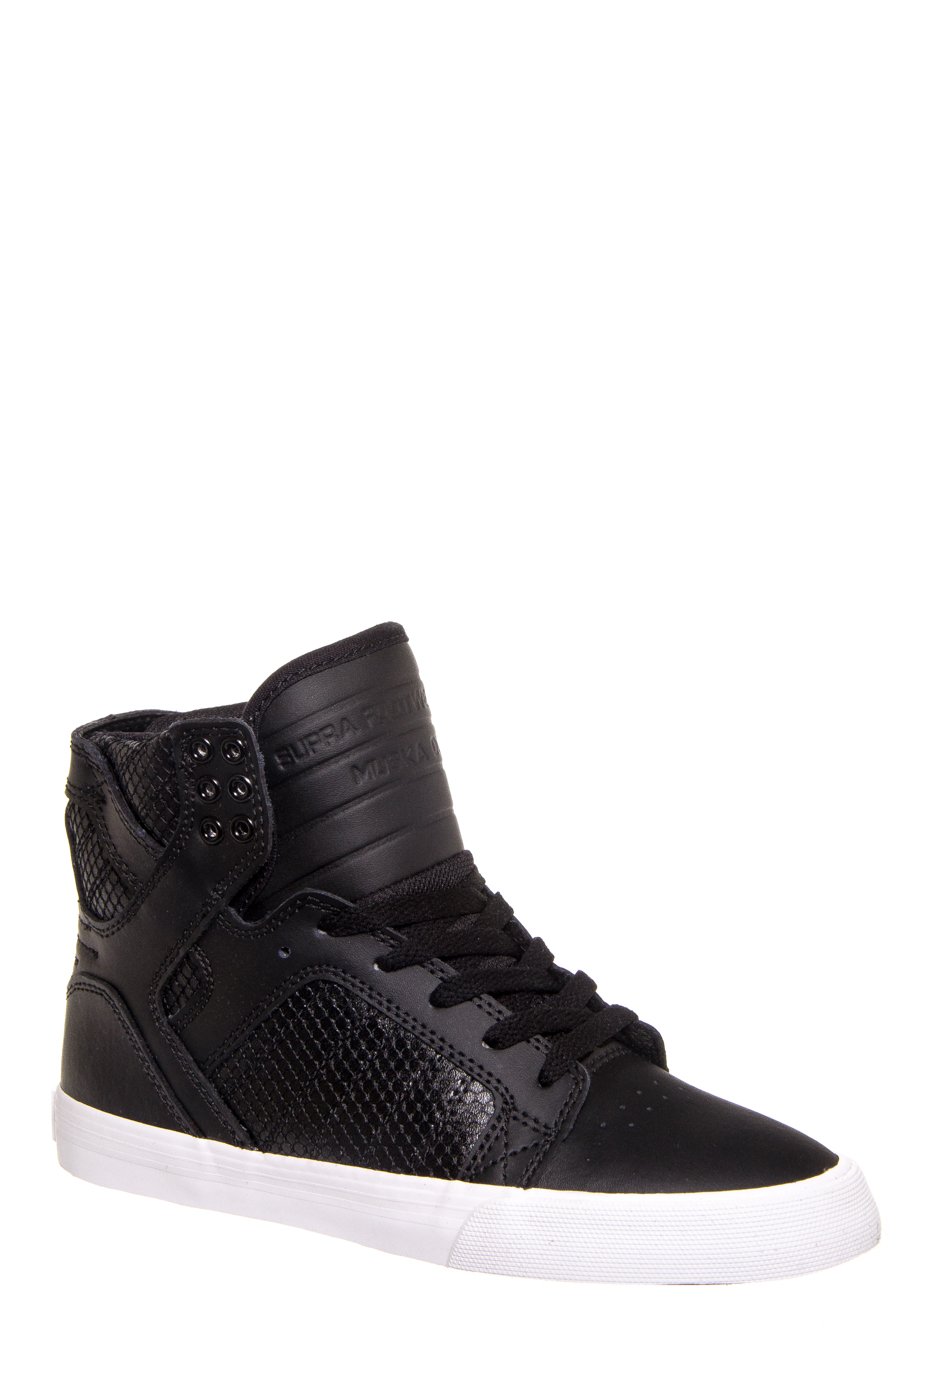 Supra Women's Skytop Hi Top Sneakers